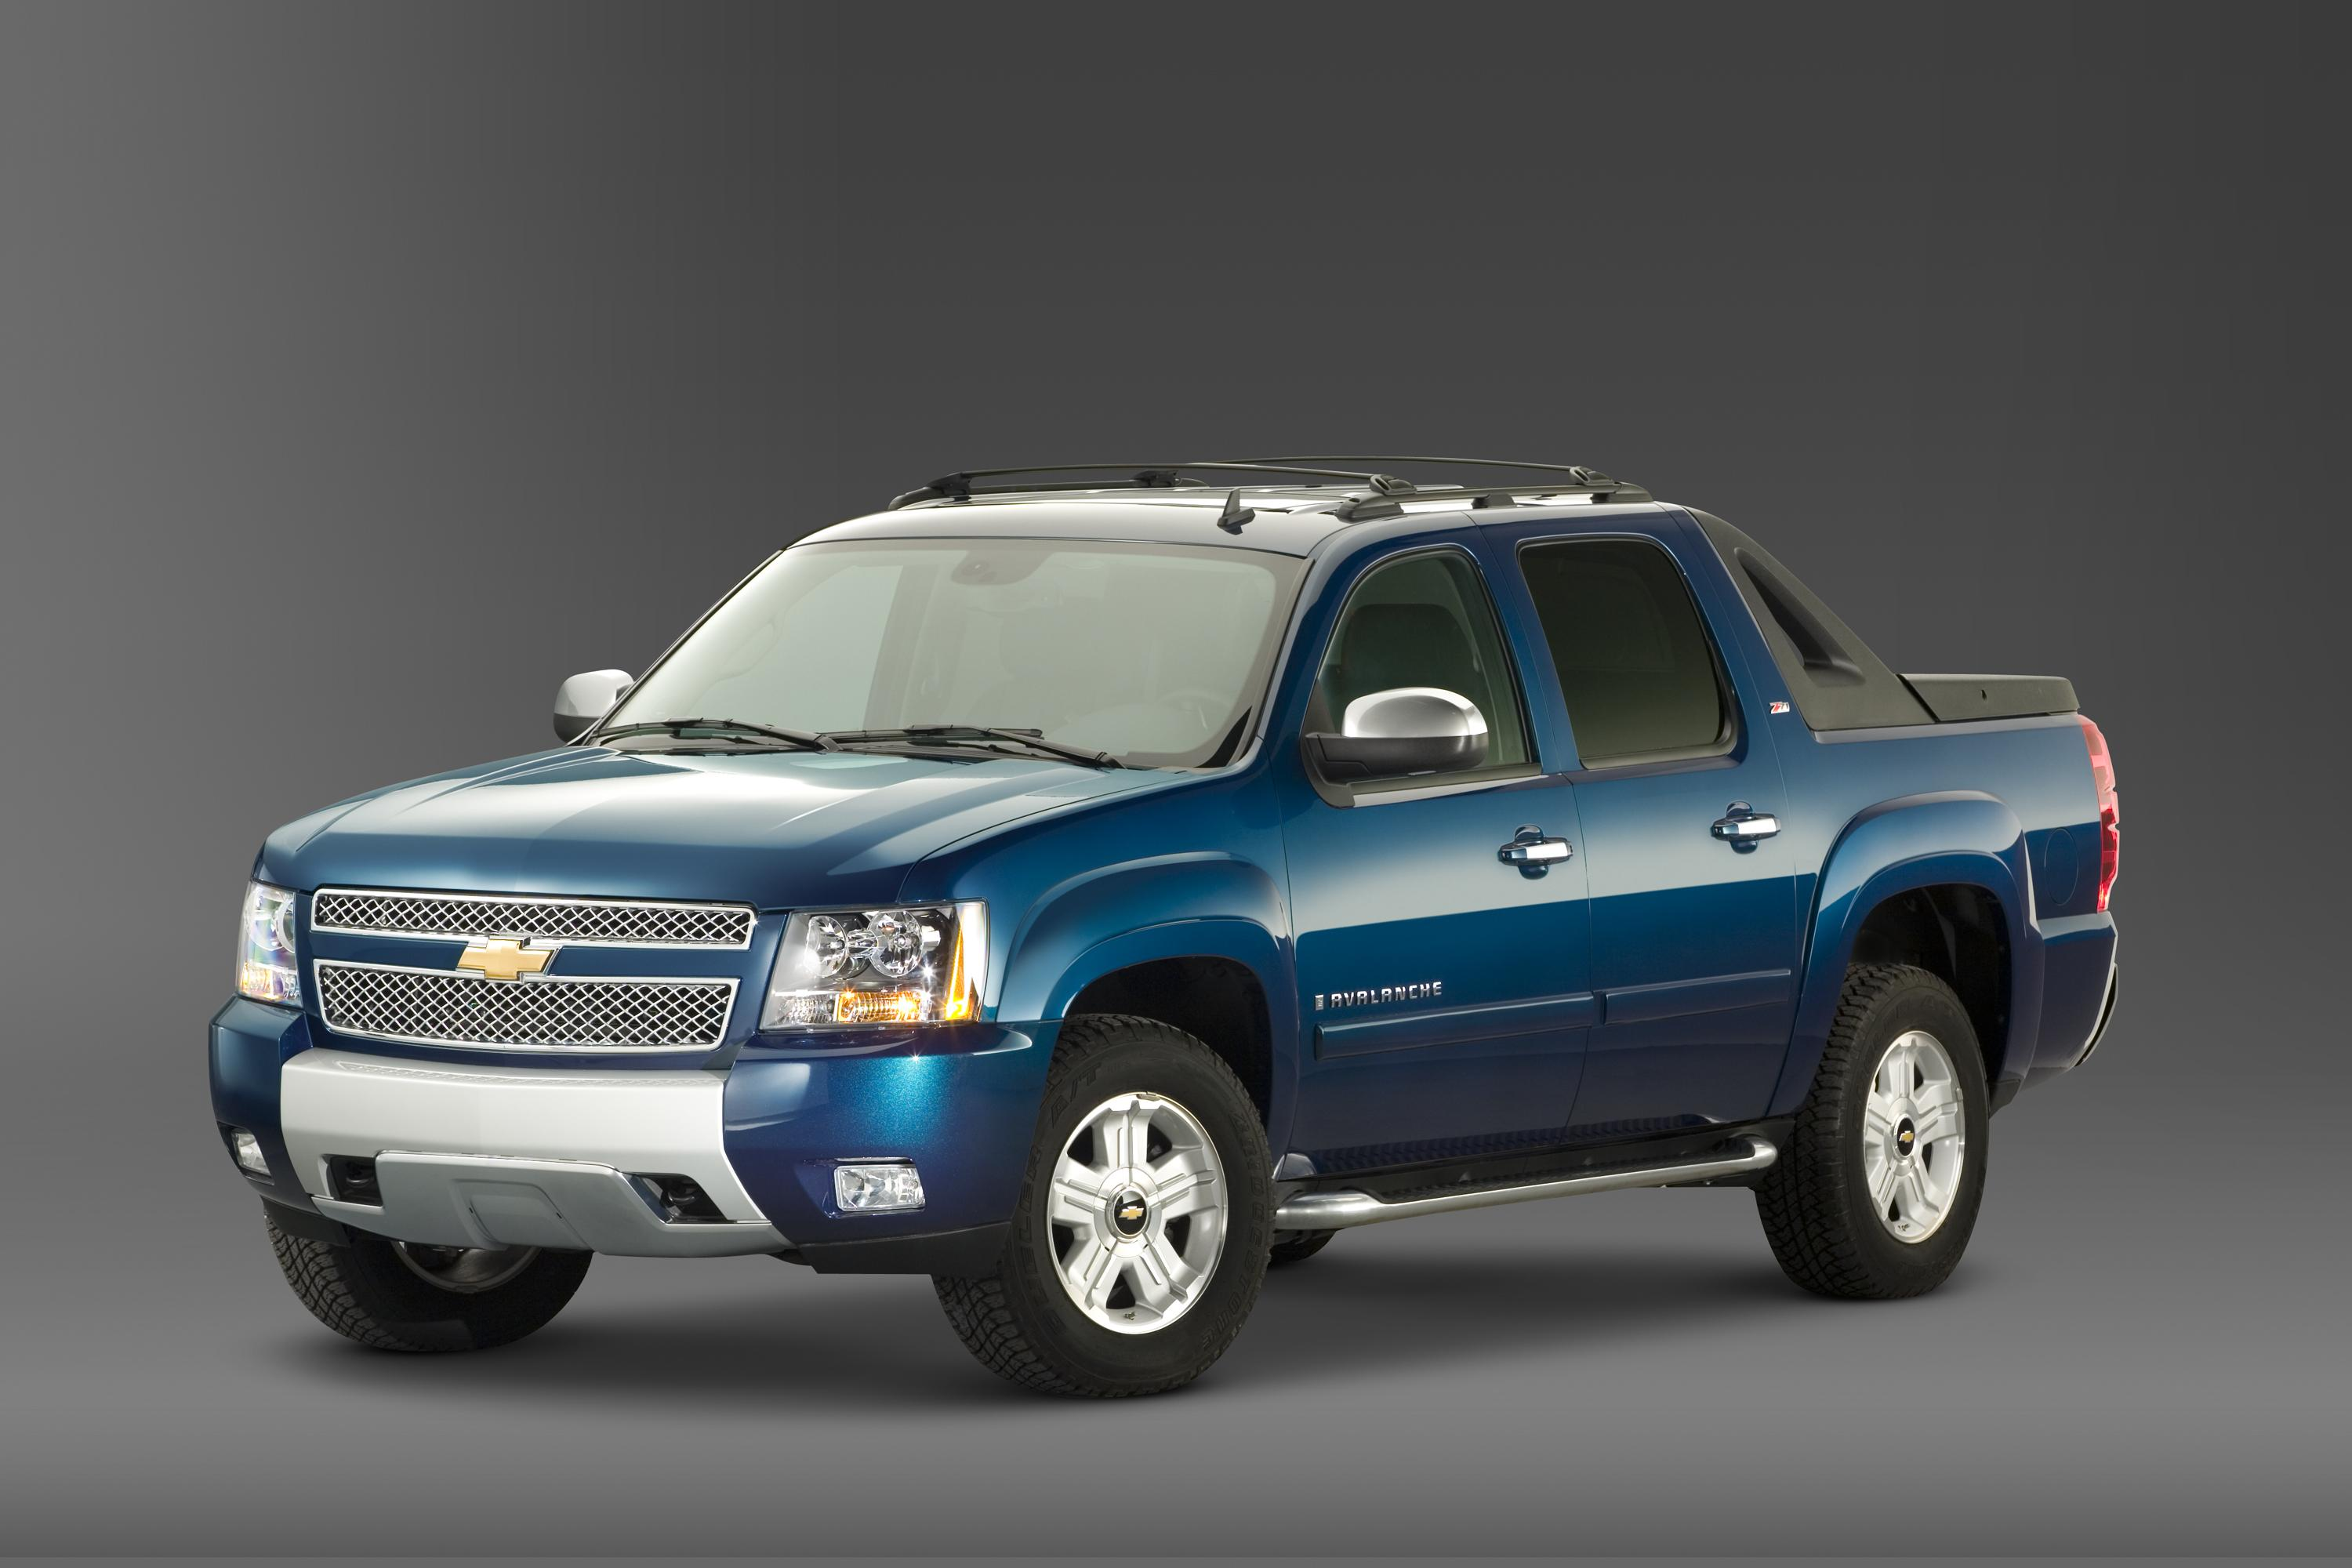 2008 chevrolet avalanche review top speed. Black Bedroom Furniture Sets. Home Design Ideas